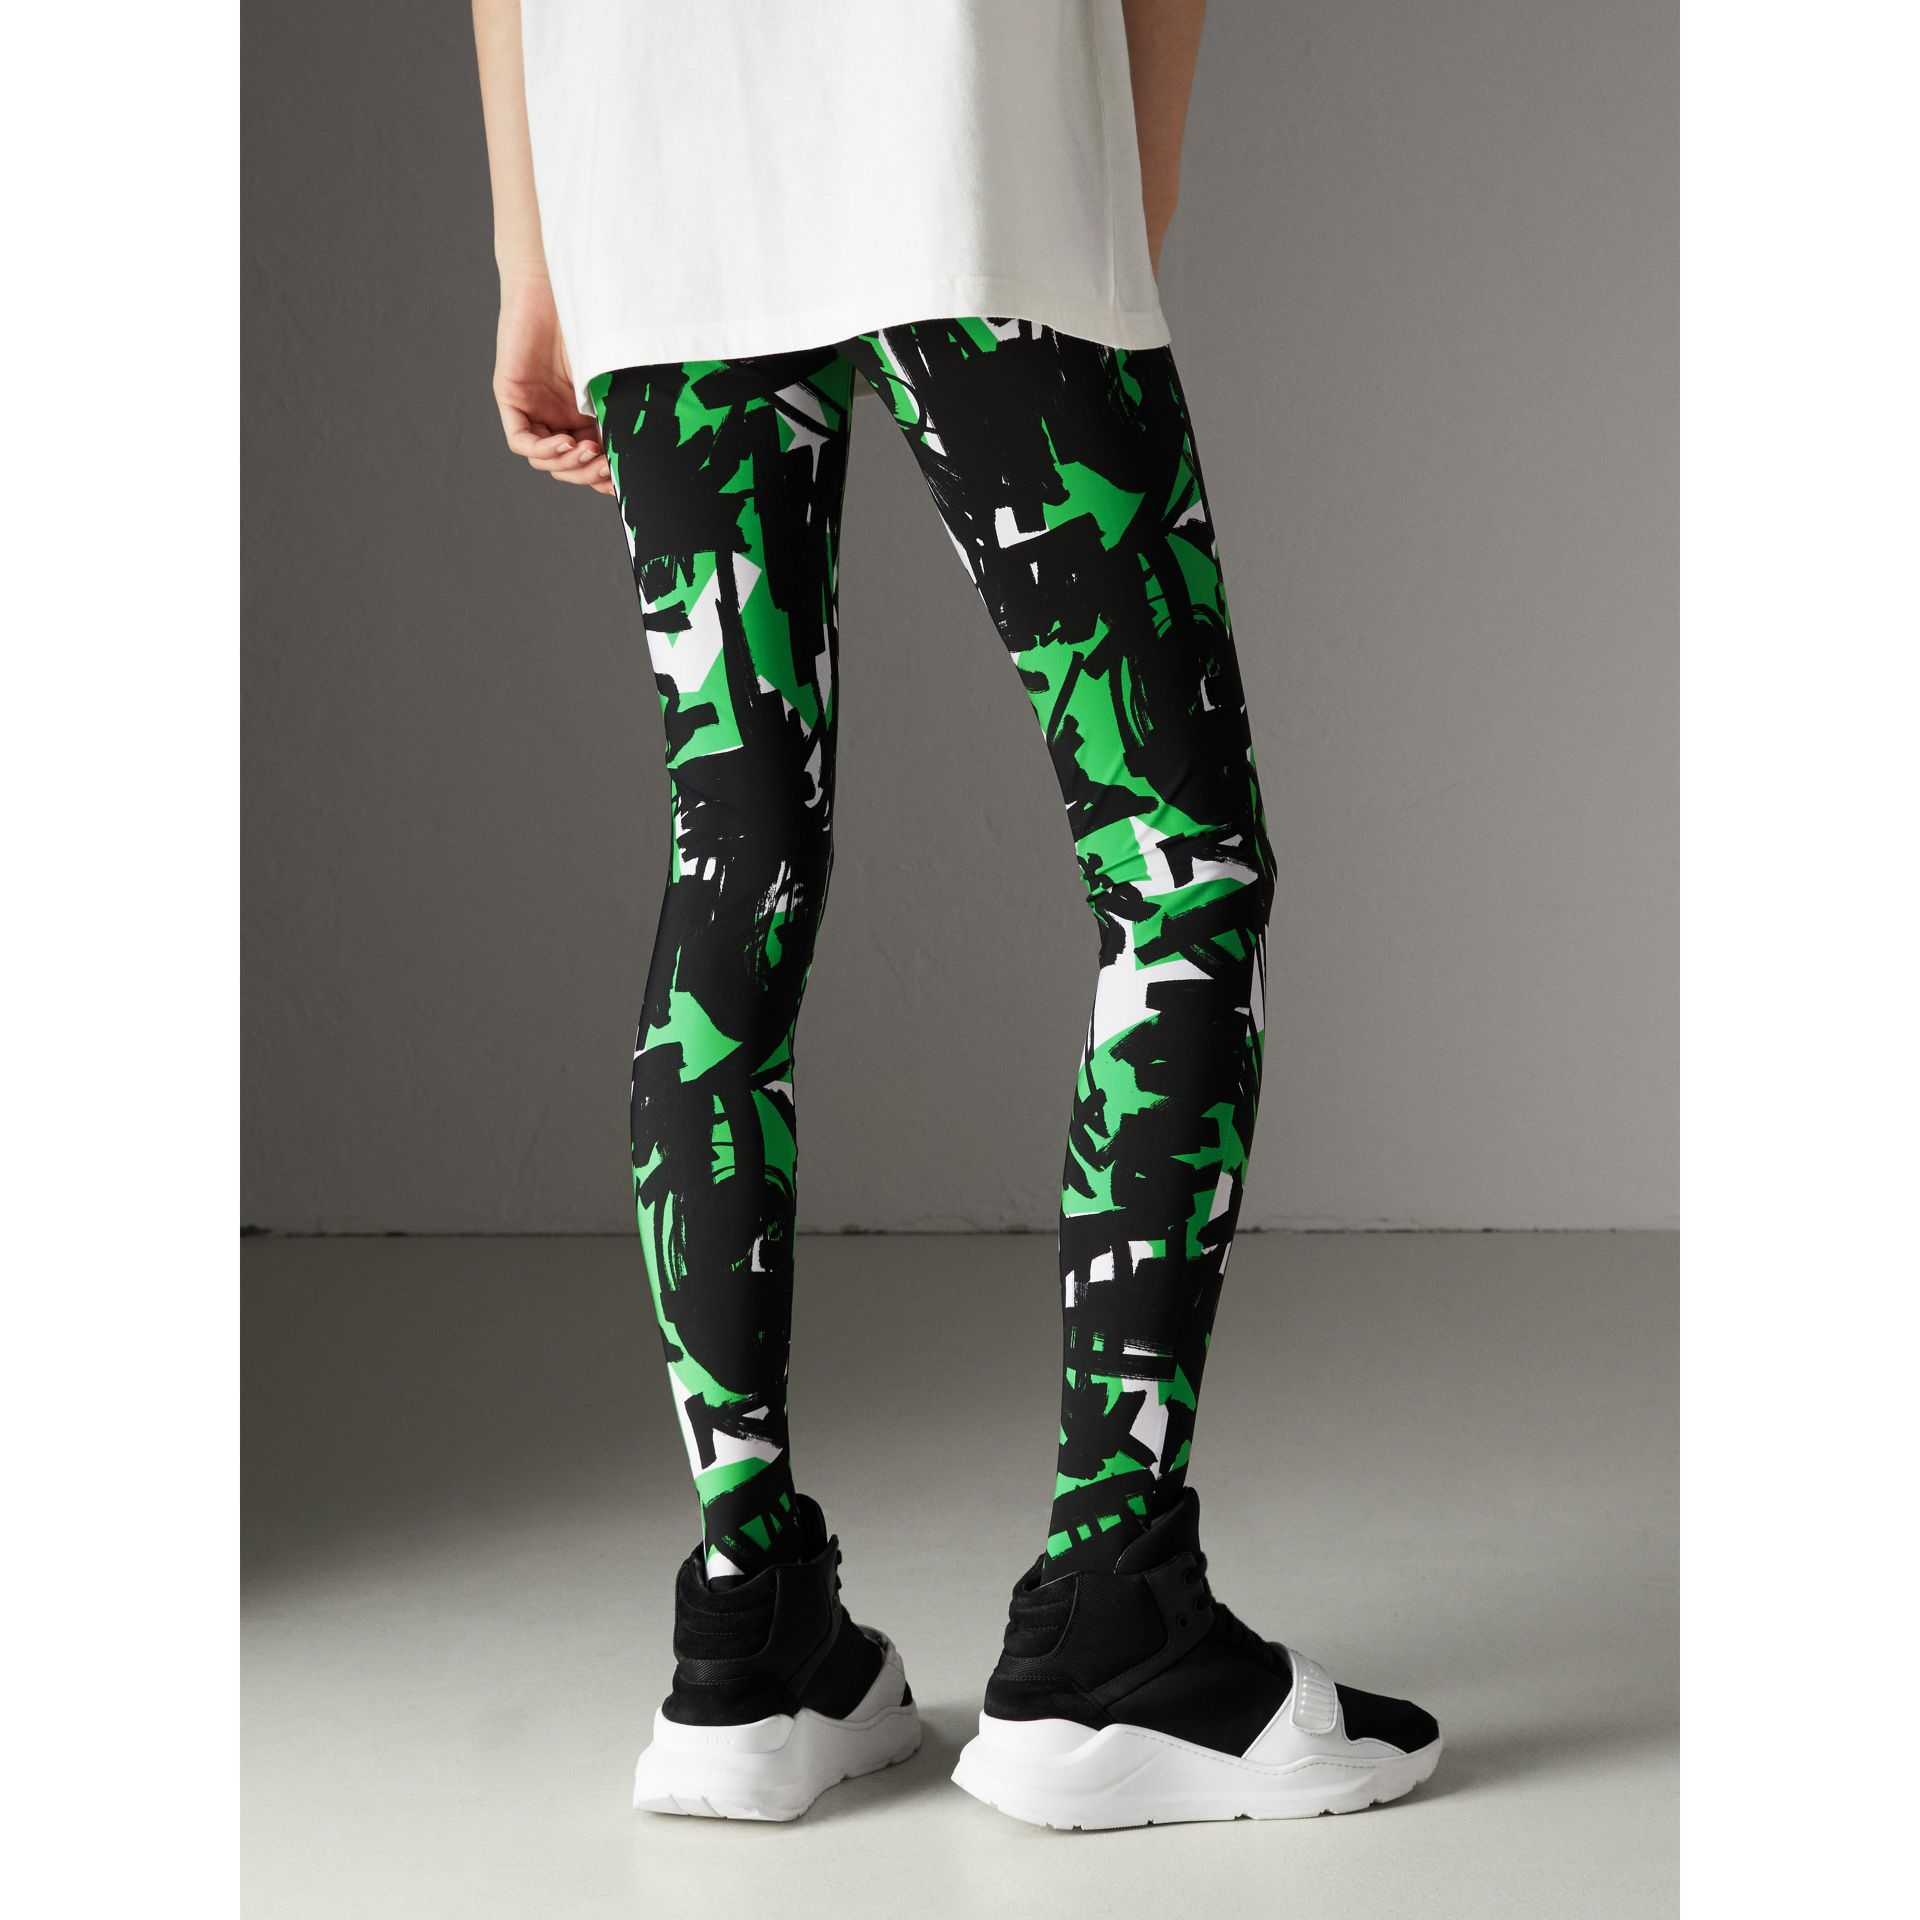 Graffiti Print Leggings in Neon Green - Women | Burberry United Kingdom - gallery image 2